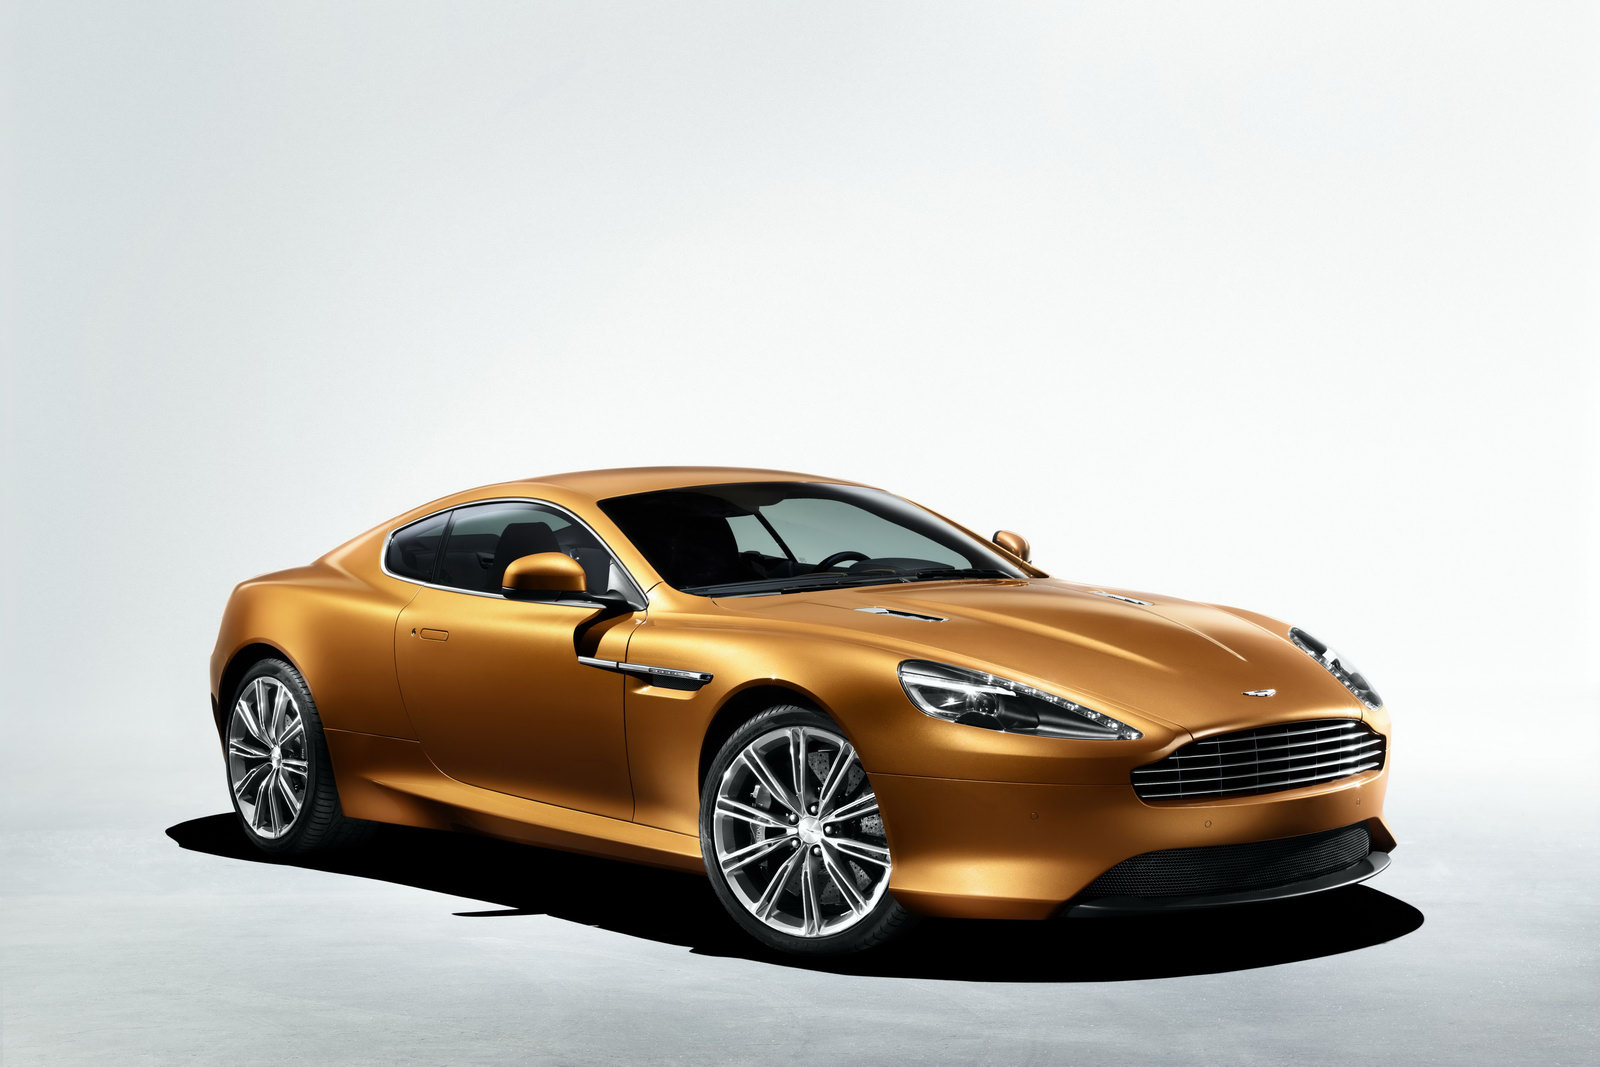 The new Aston Martin Virage revealed